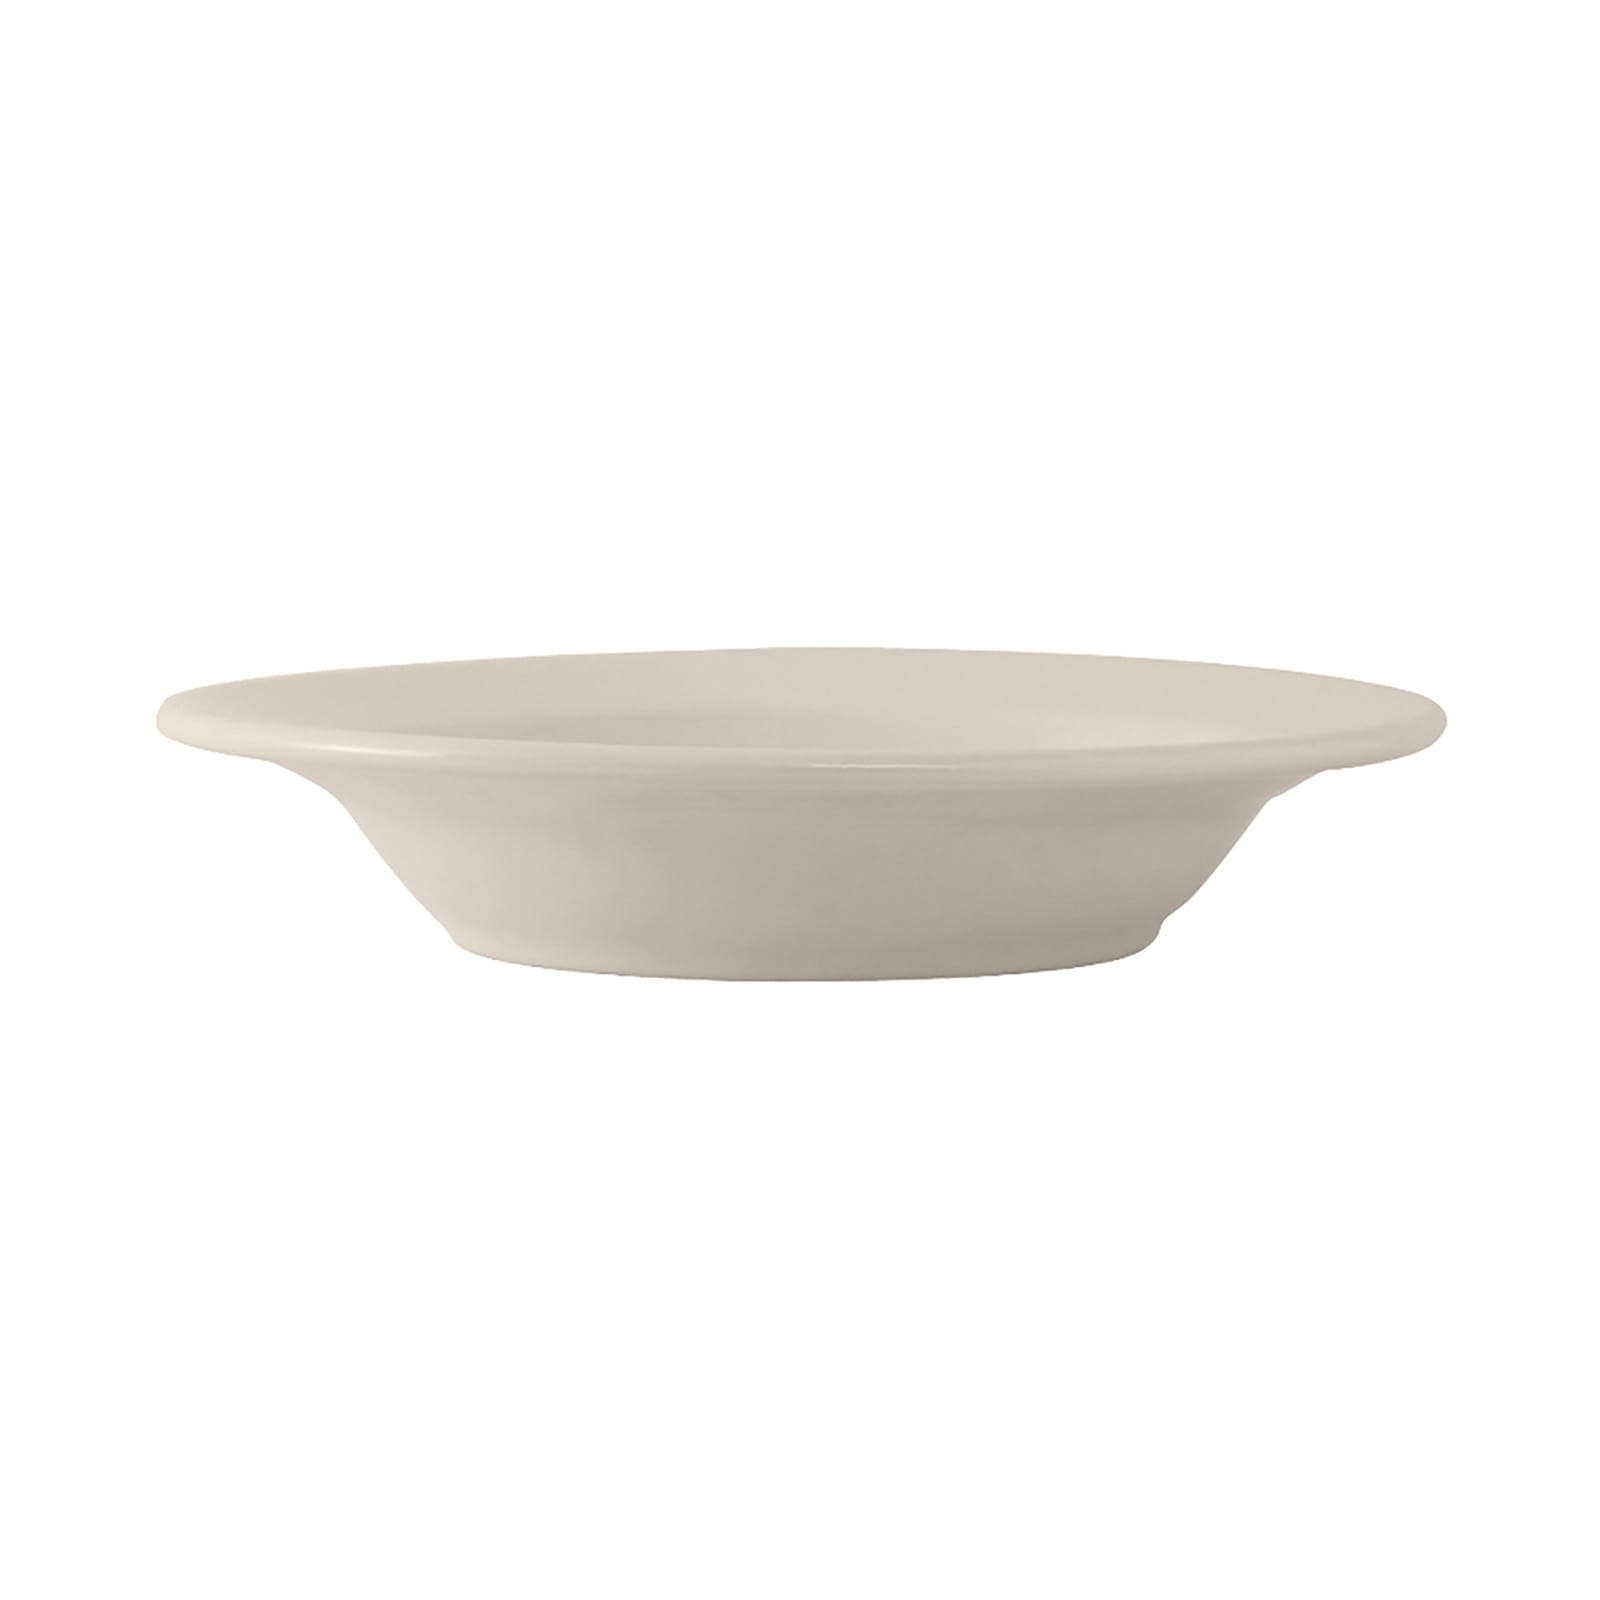 Tuxton TRE-003 9 oz Reno/Nevada Soup Bowl - Ceramic, American White